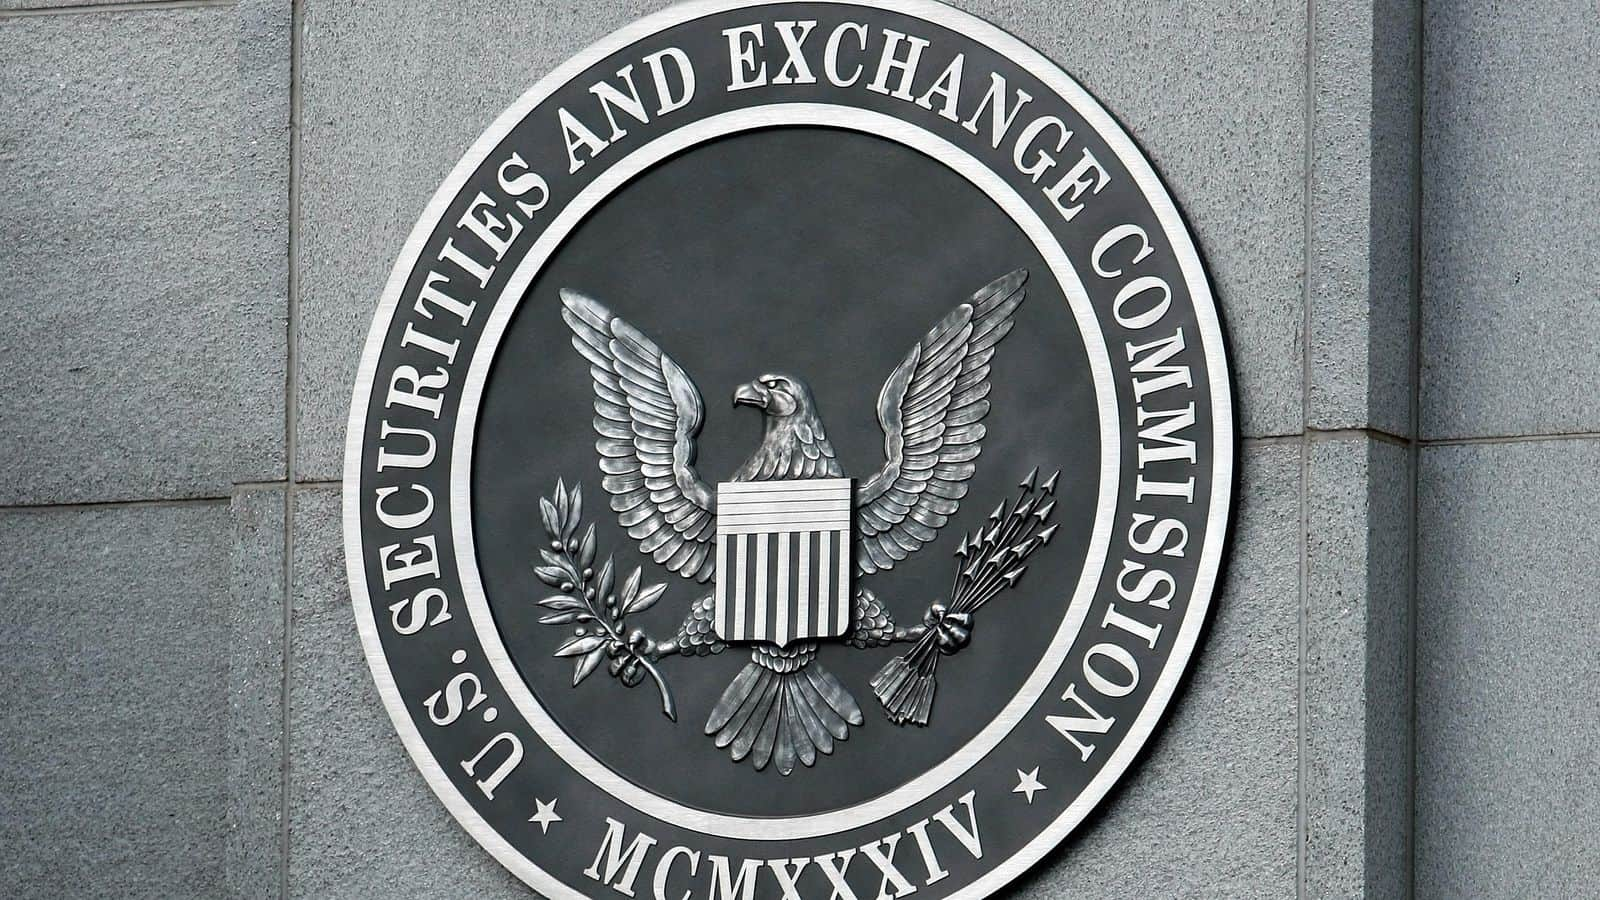 SEC Freezes Virgil Capital's Assets, Seeks Penalties from Company CEO Over Fraud Allegations